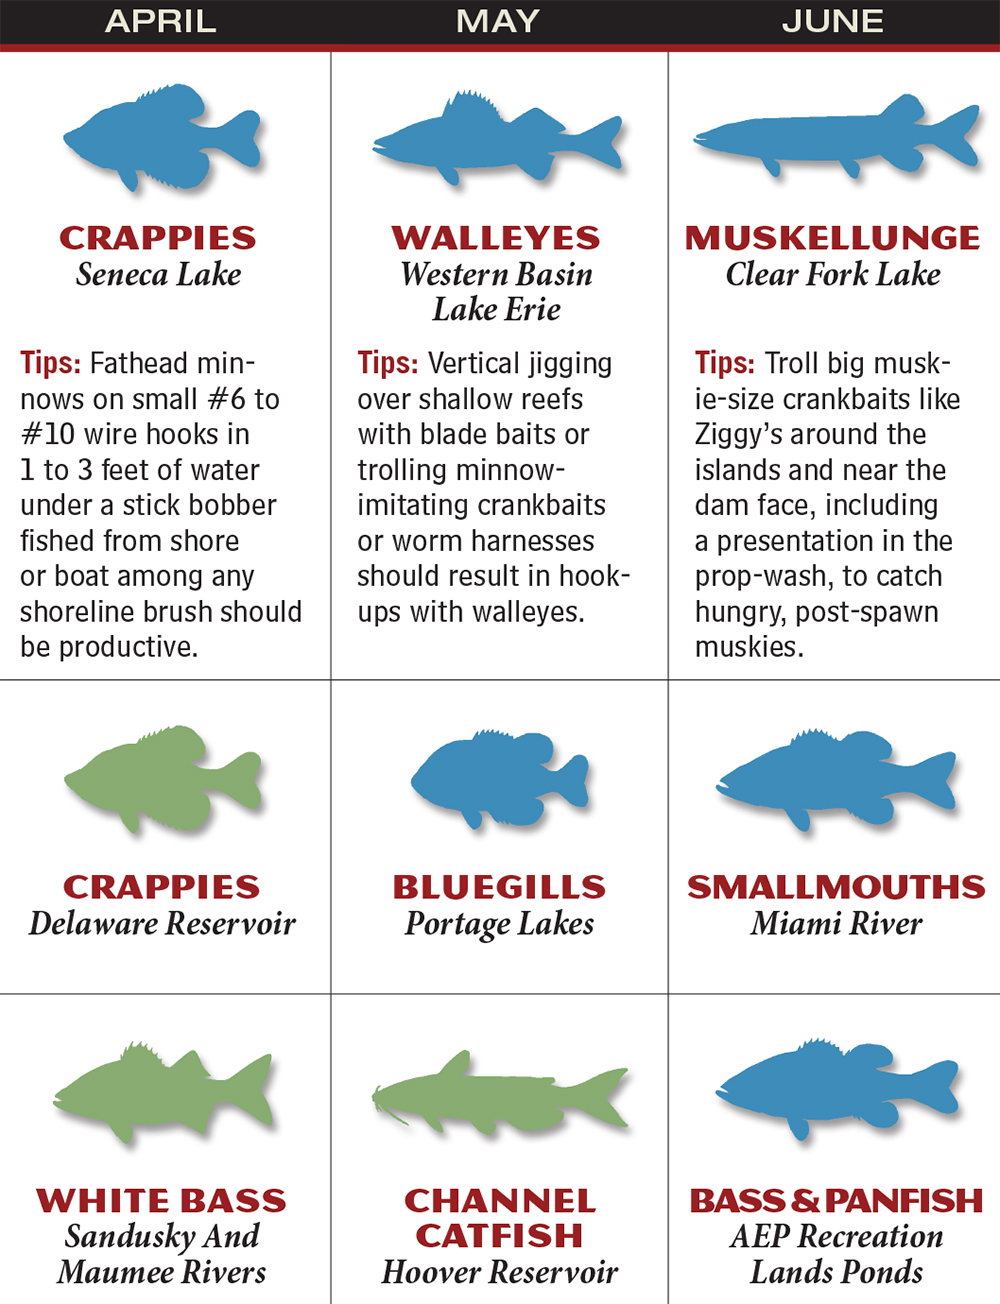 Ohio 2016 Fishing Calendar